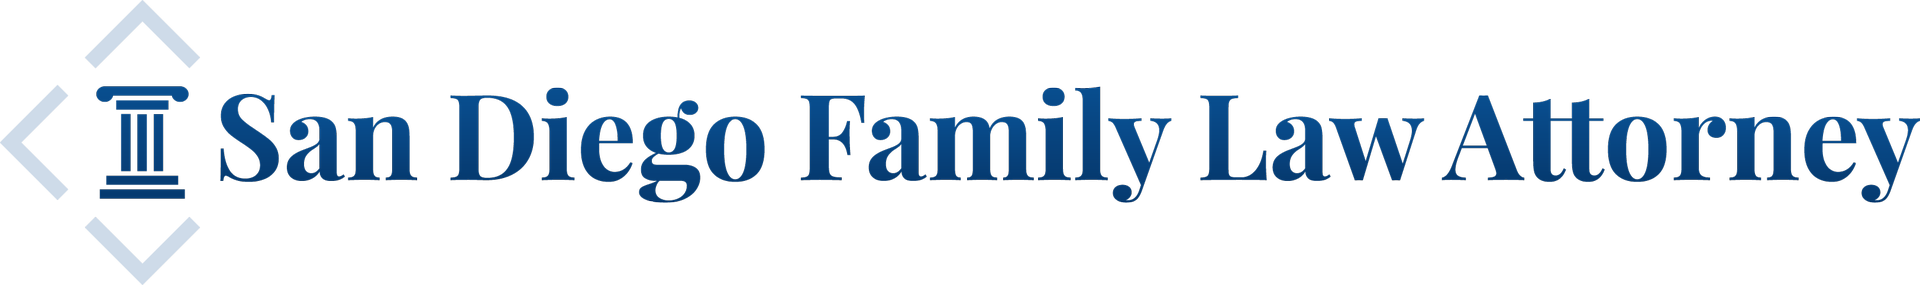 San Diego Family Law Attorney logo